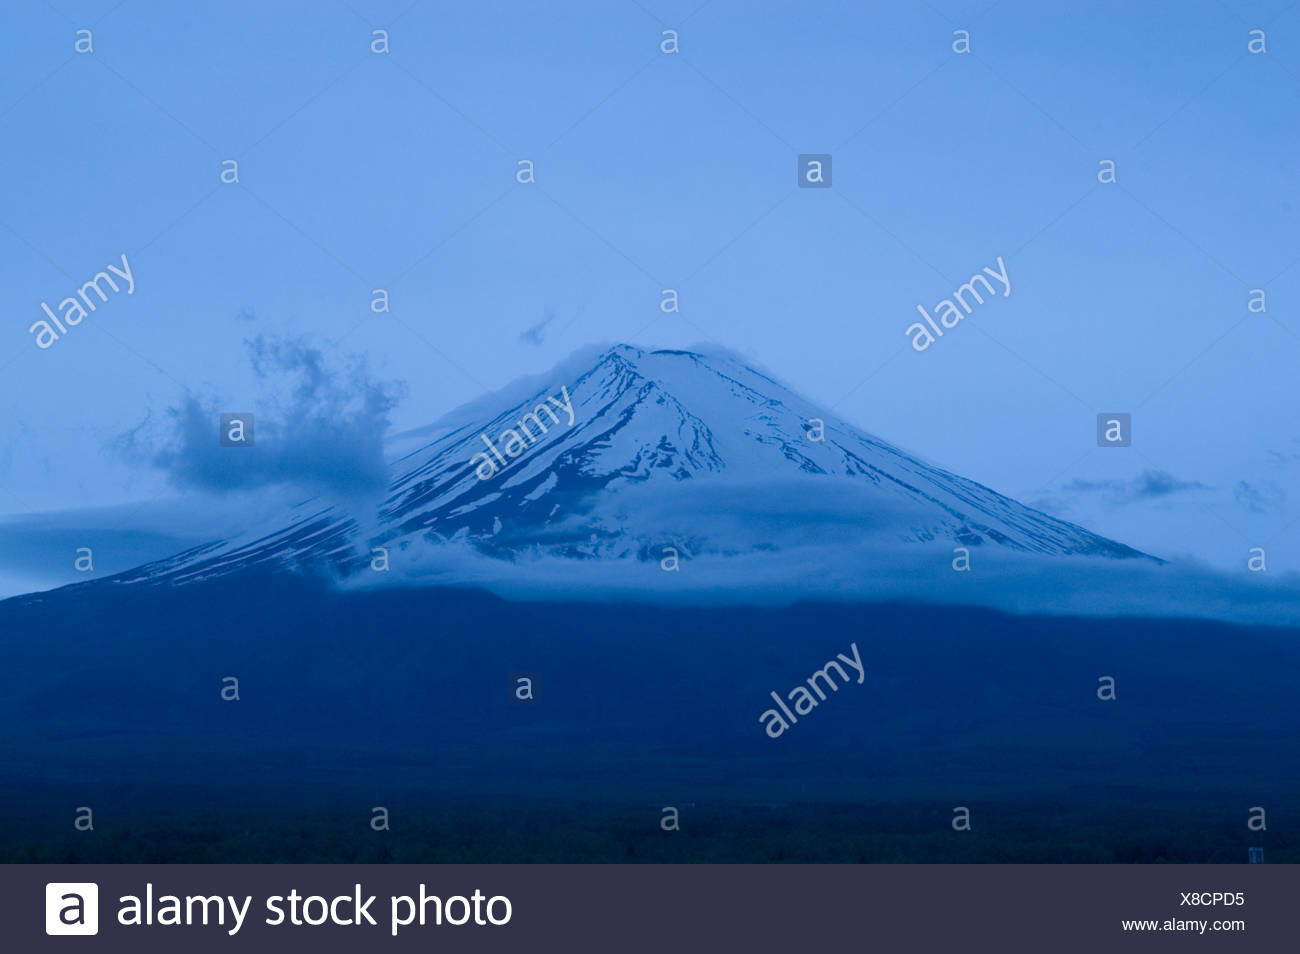 Mount Fuji, the highest peak in Japan, just after sunset. - Stock Image